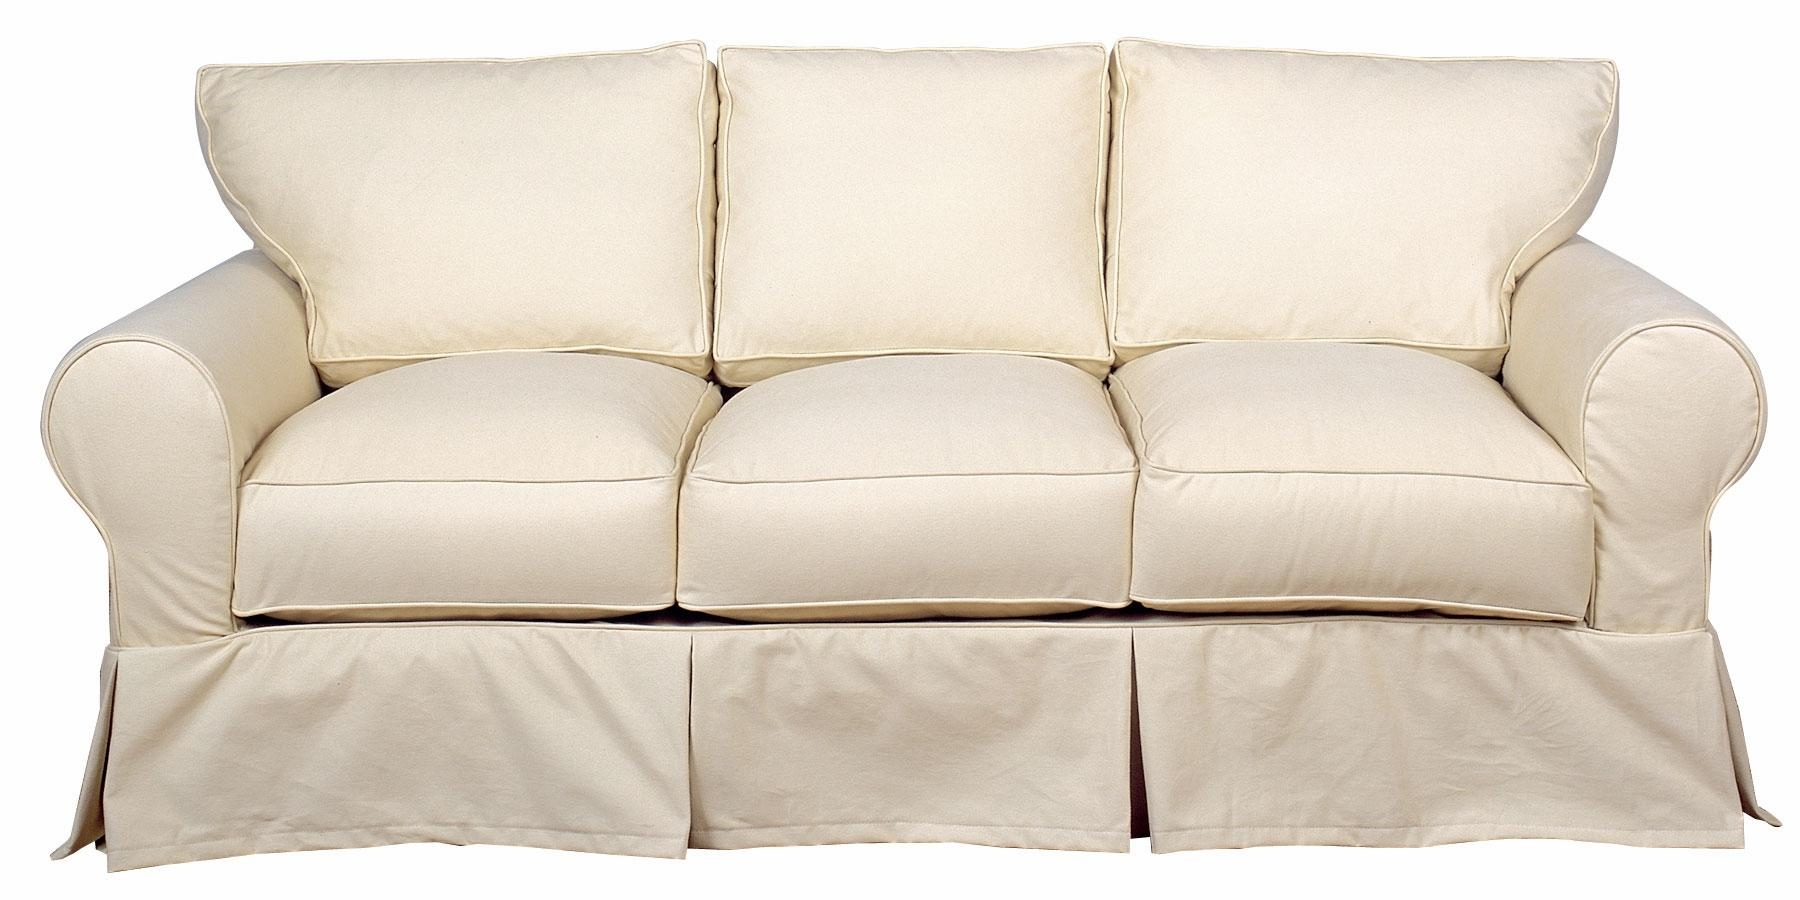 Decor: Sofa Seat Cushion Slipcovers | Cushion Covers Sofa | T With Loveseat Slipcovers 3 Pieces (View 10 of 20)